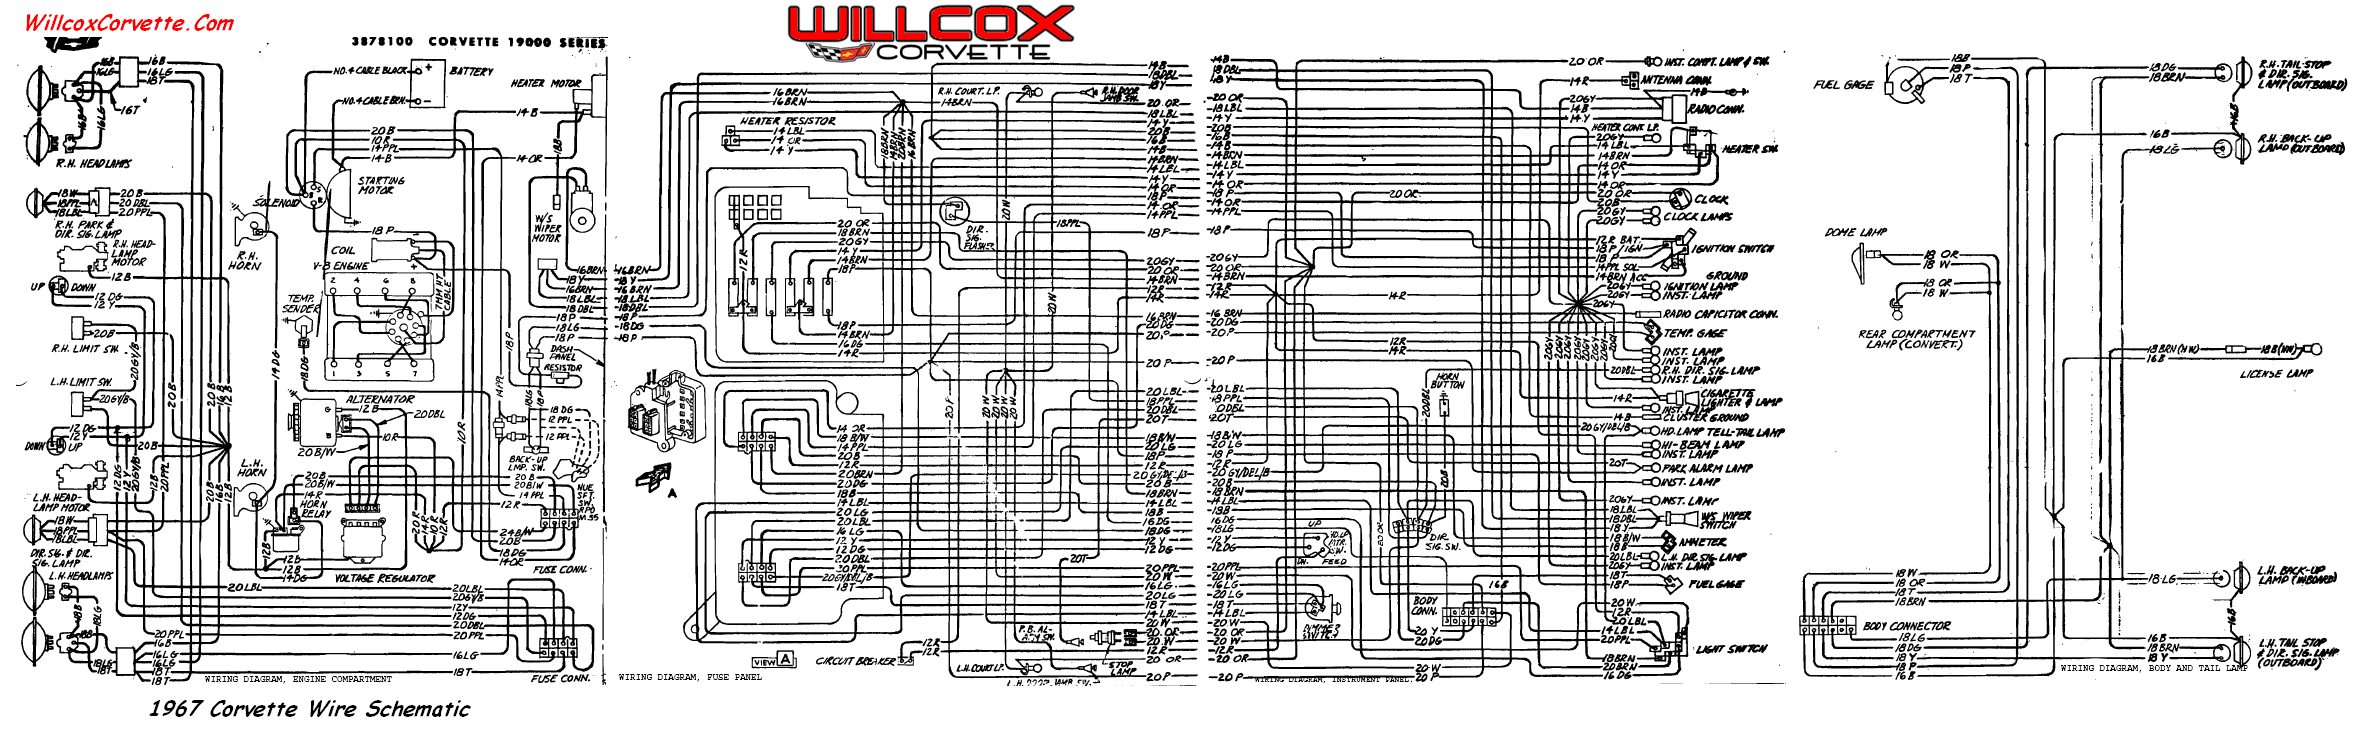 67 wire schematic for tracing wires 1978 corvette wiring diagram pdf 1980 el camino wiring diagram  at mifinder.co